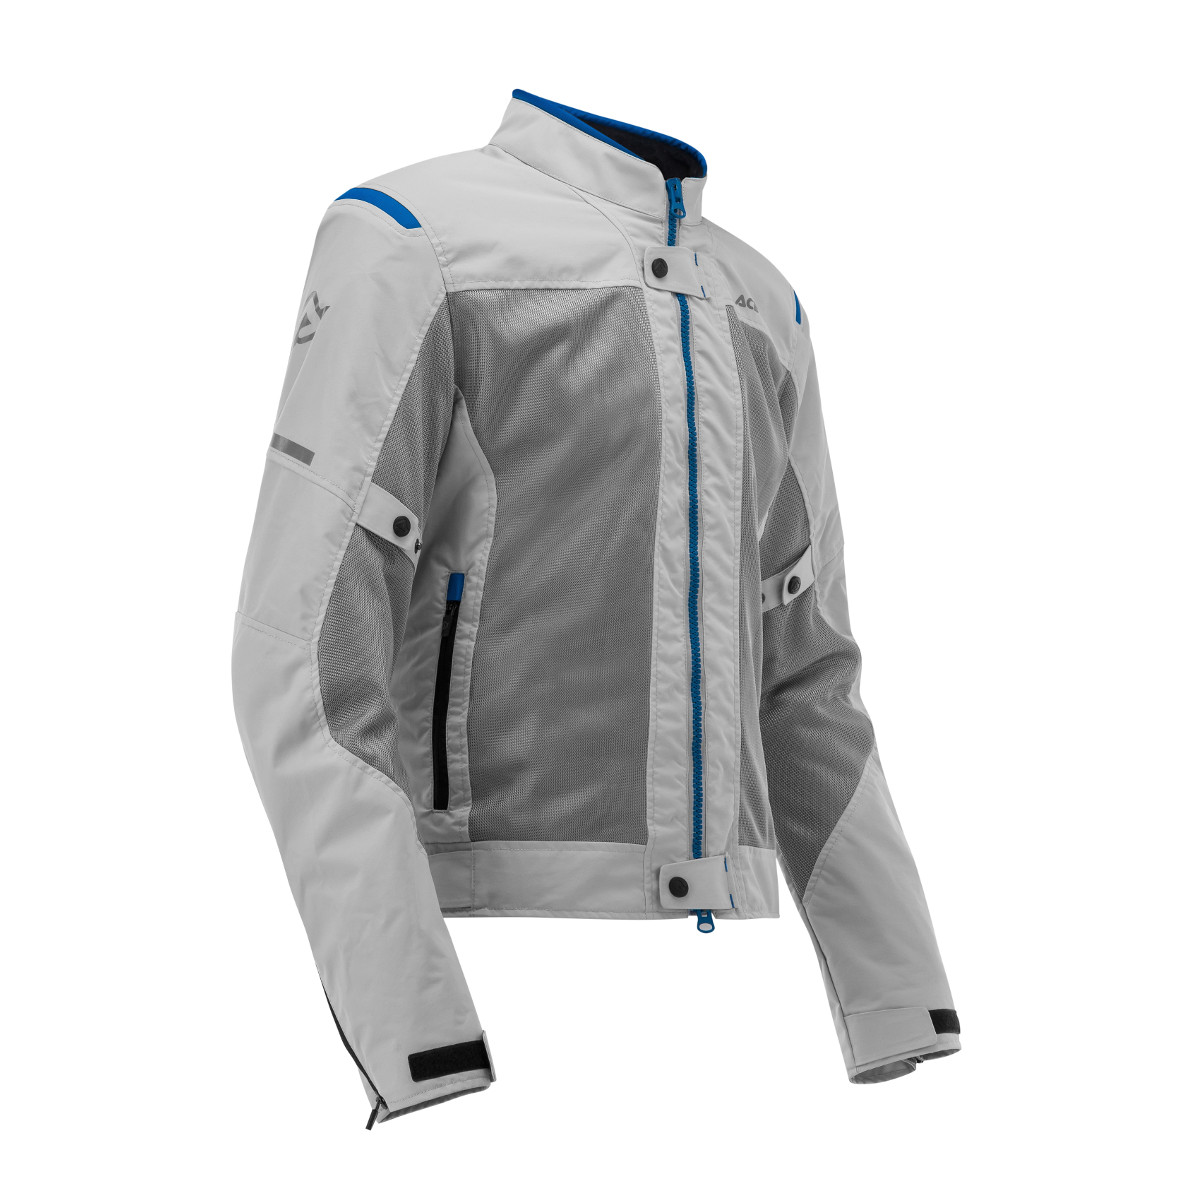 52b8b5fb Acerbis MX Jacket Ramsey My Vented 2.0 Grey/Blue | Maciag Offroad